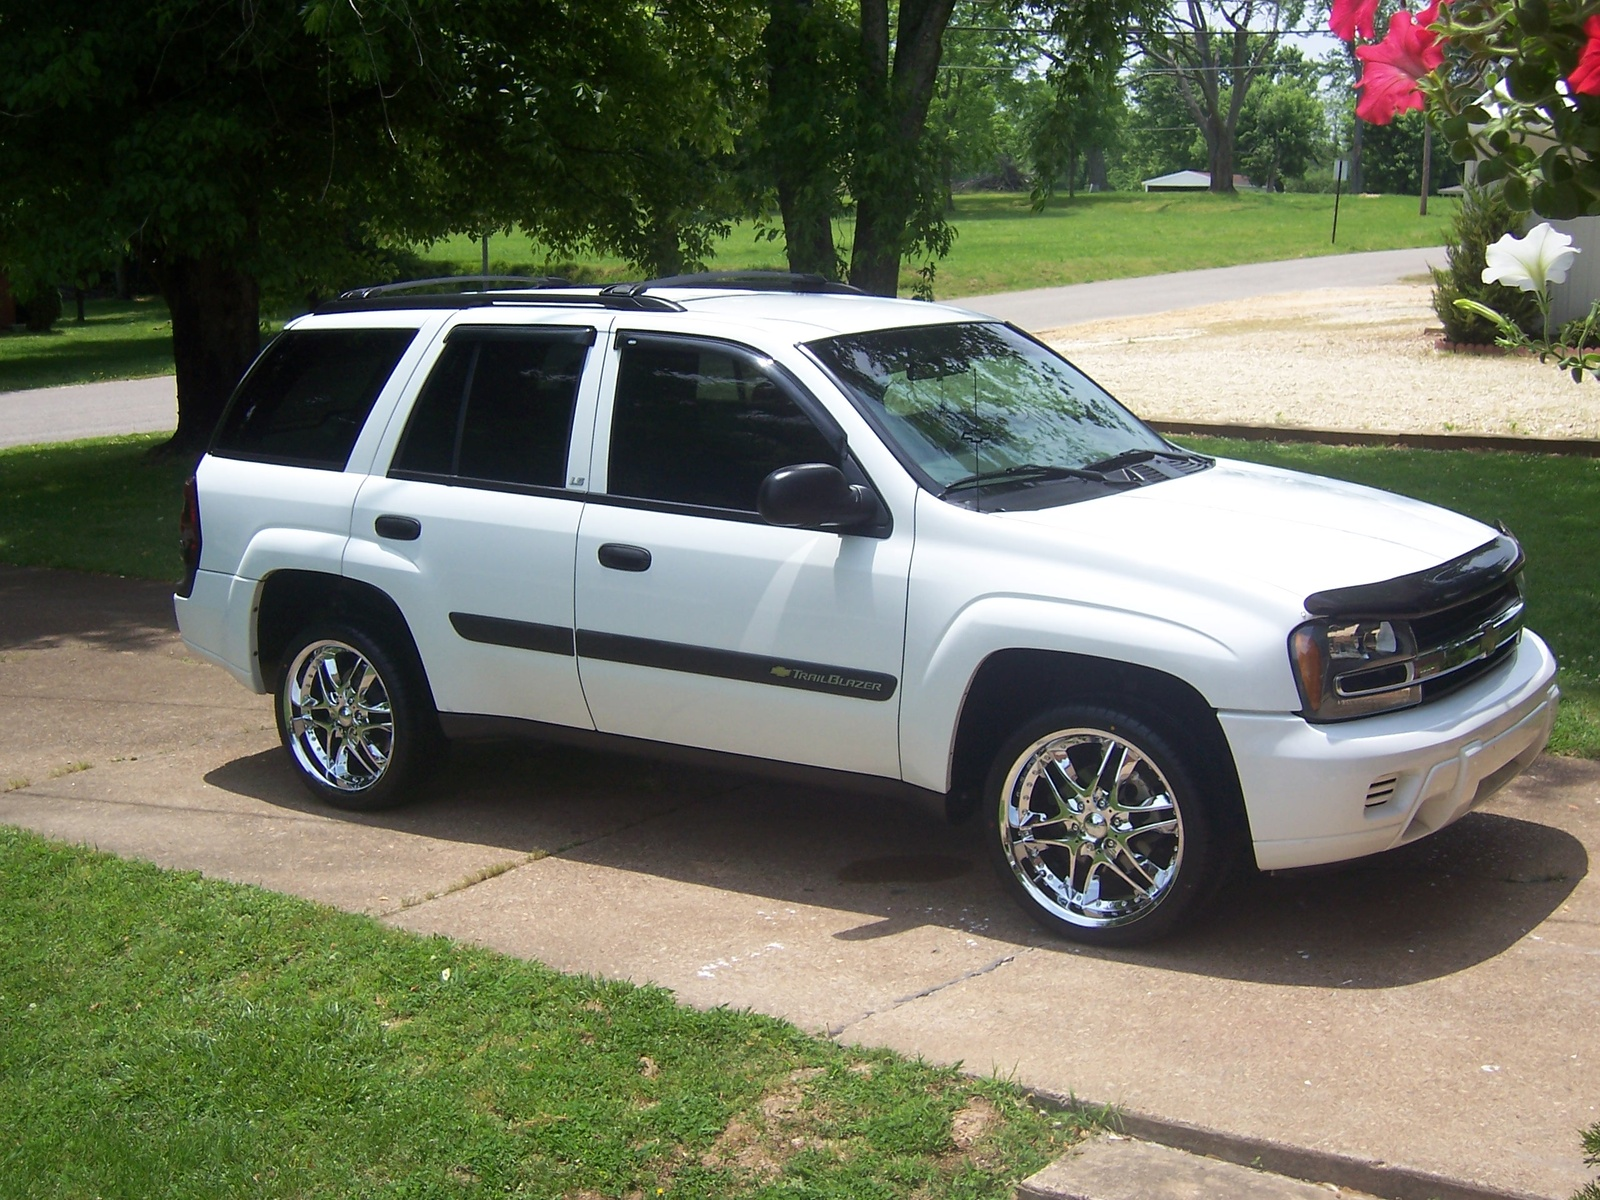 2003 Chevrolet TrailBlazer LS picture